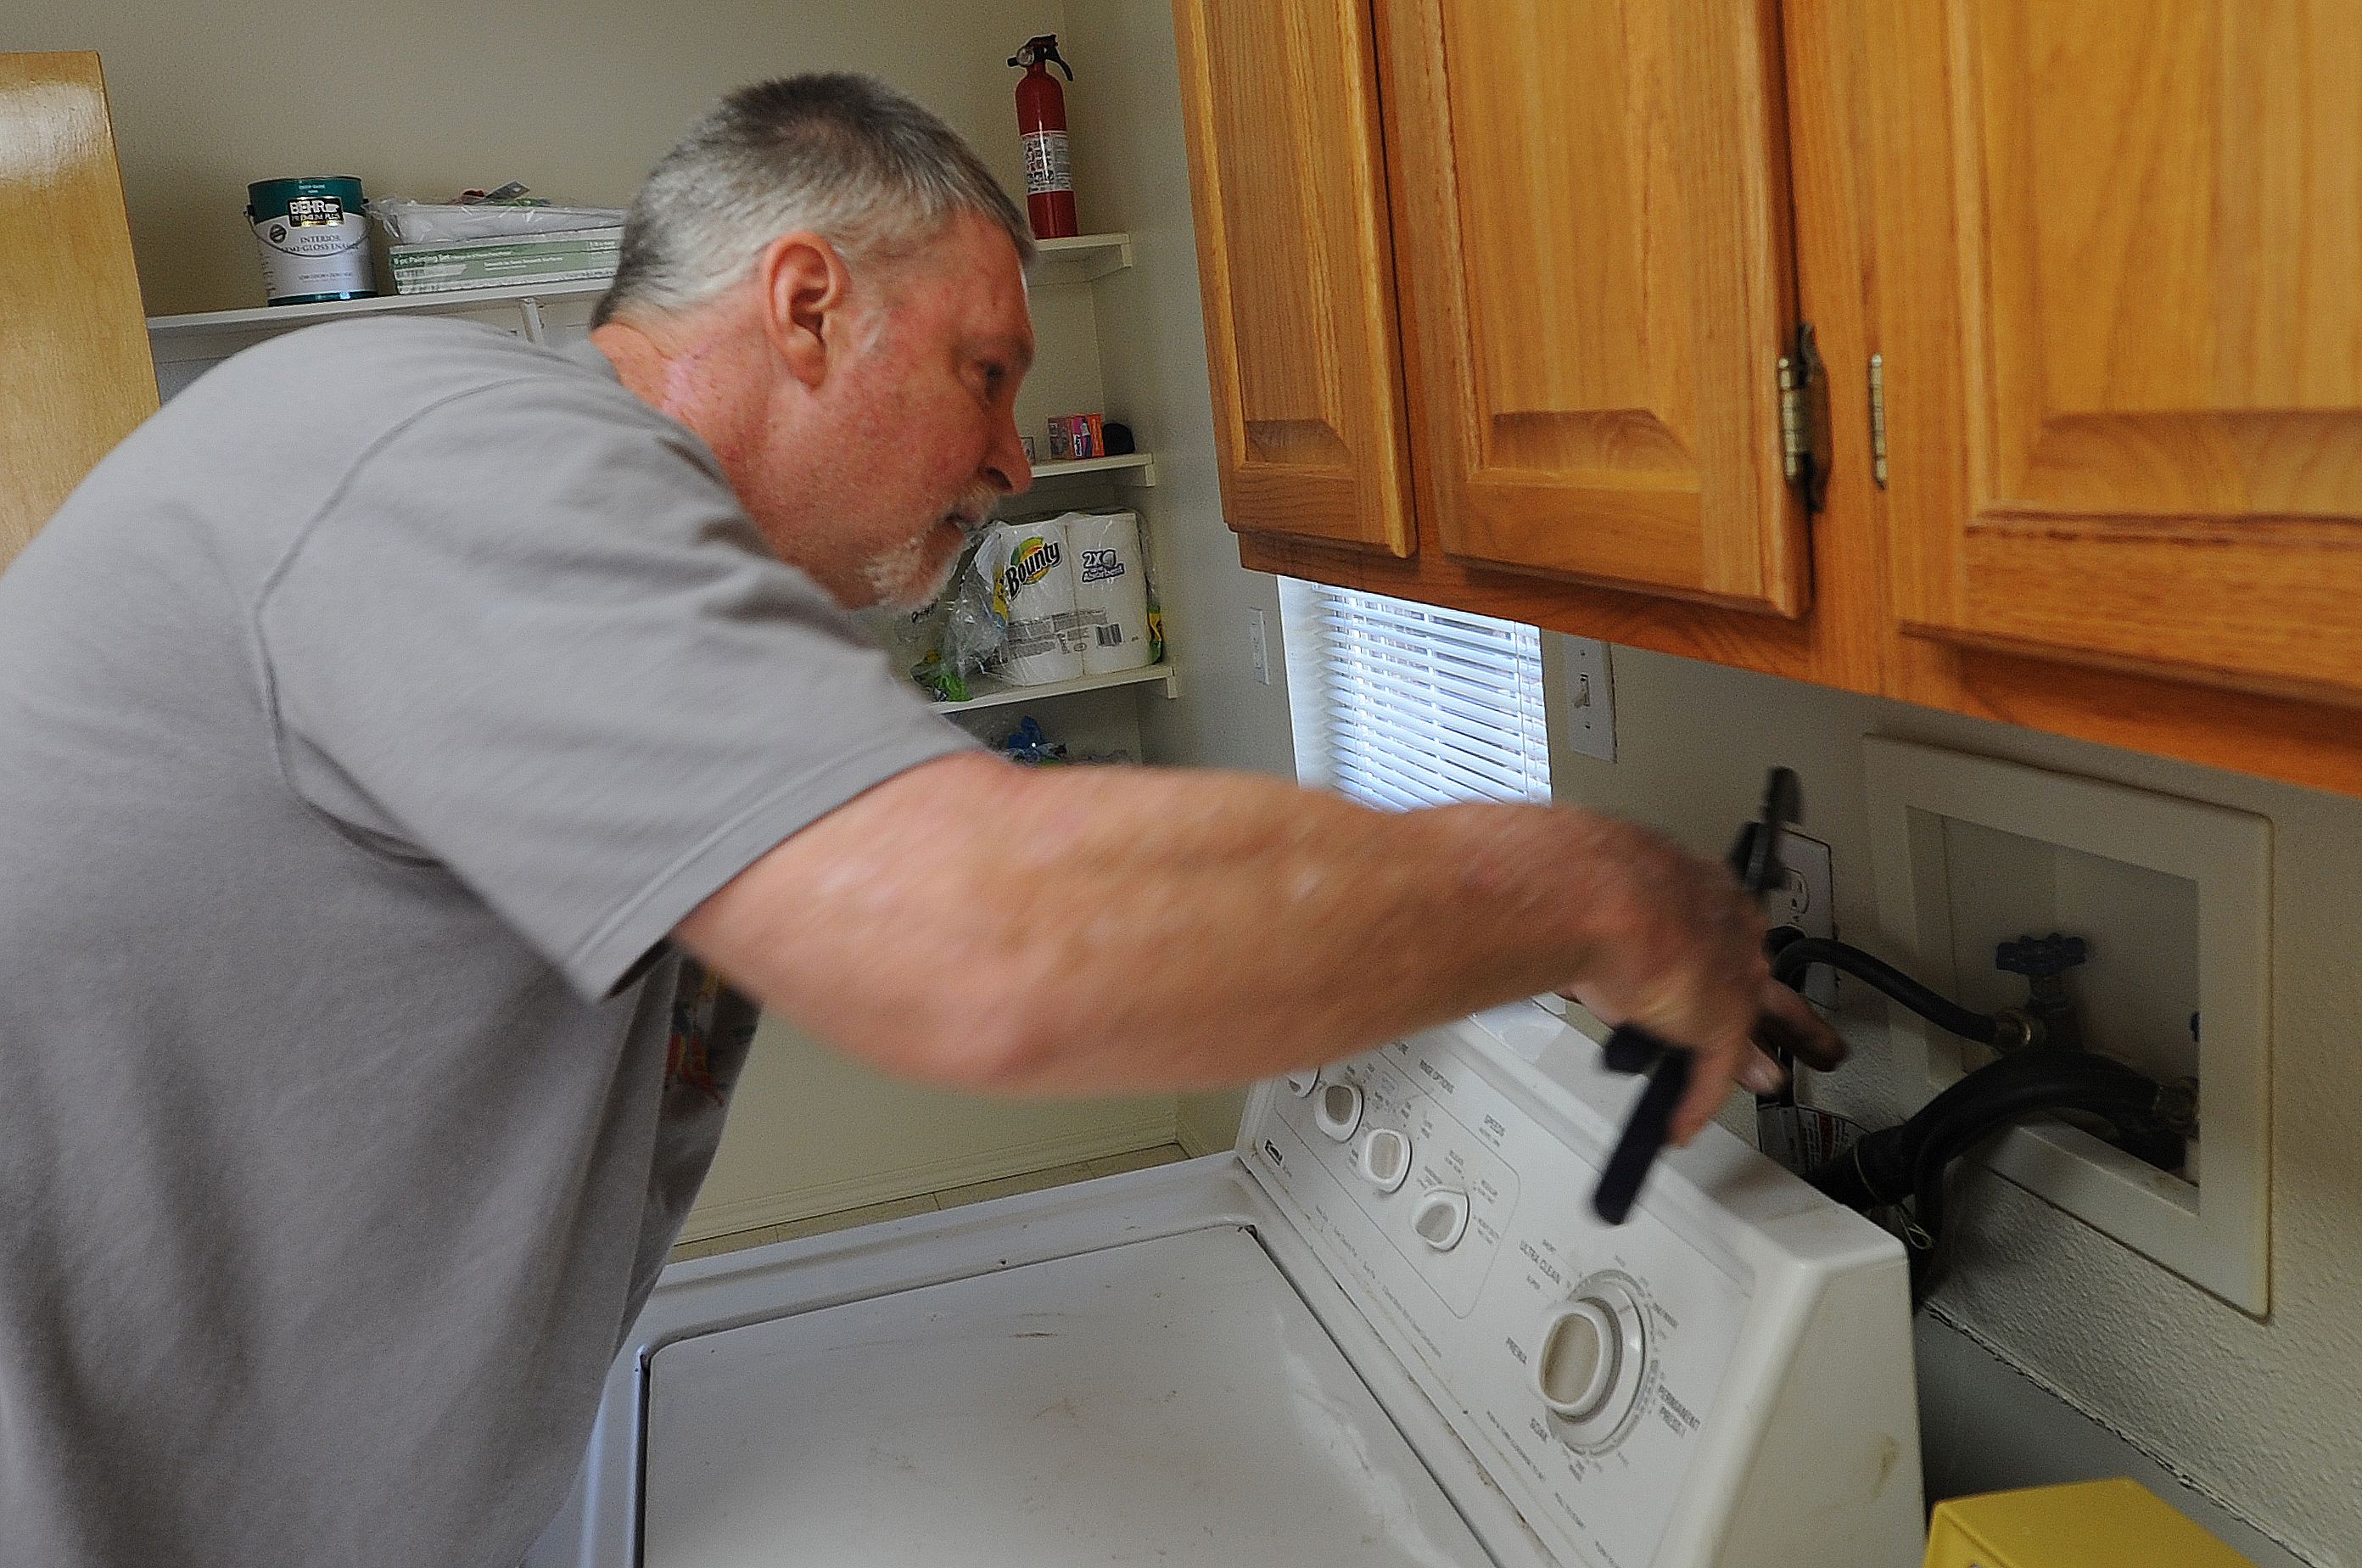 Veteran restores appliances, helps new Airmen